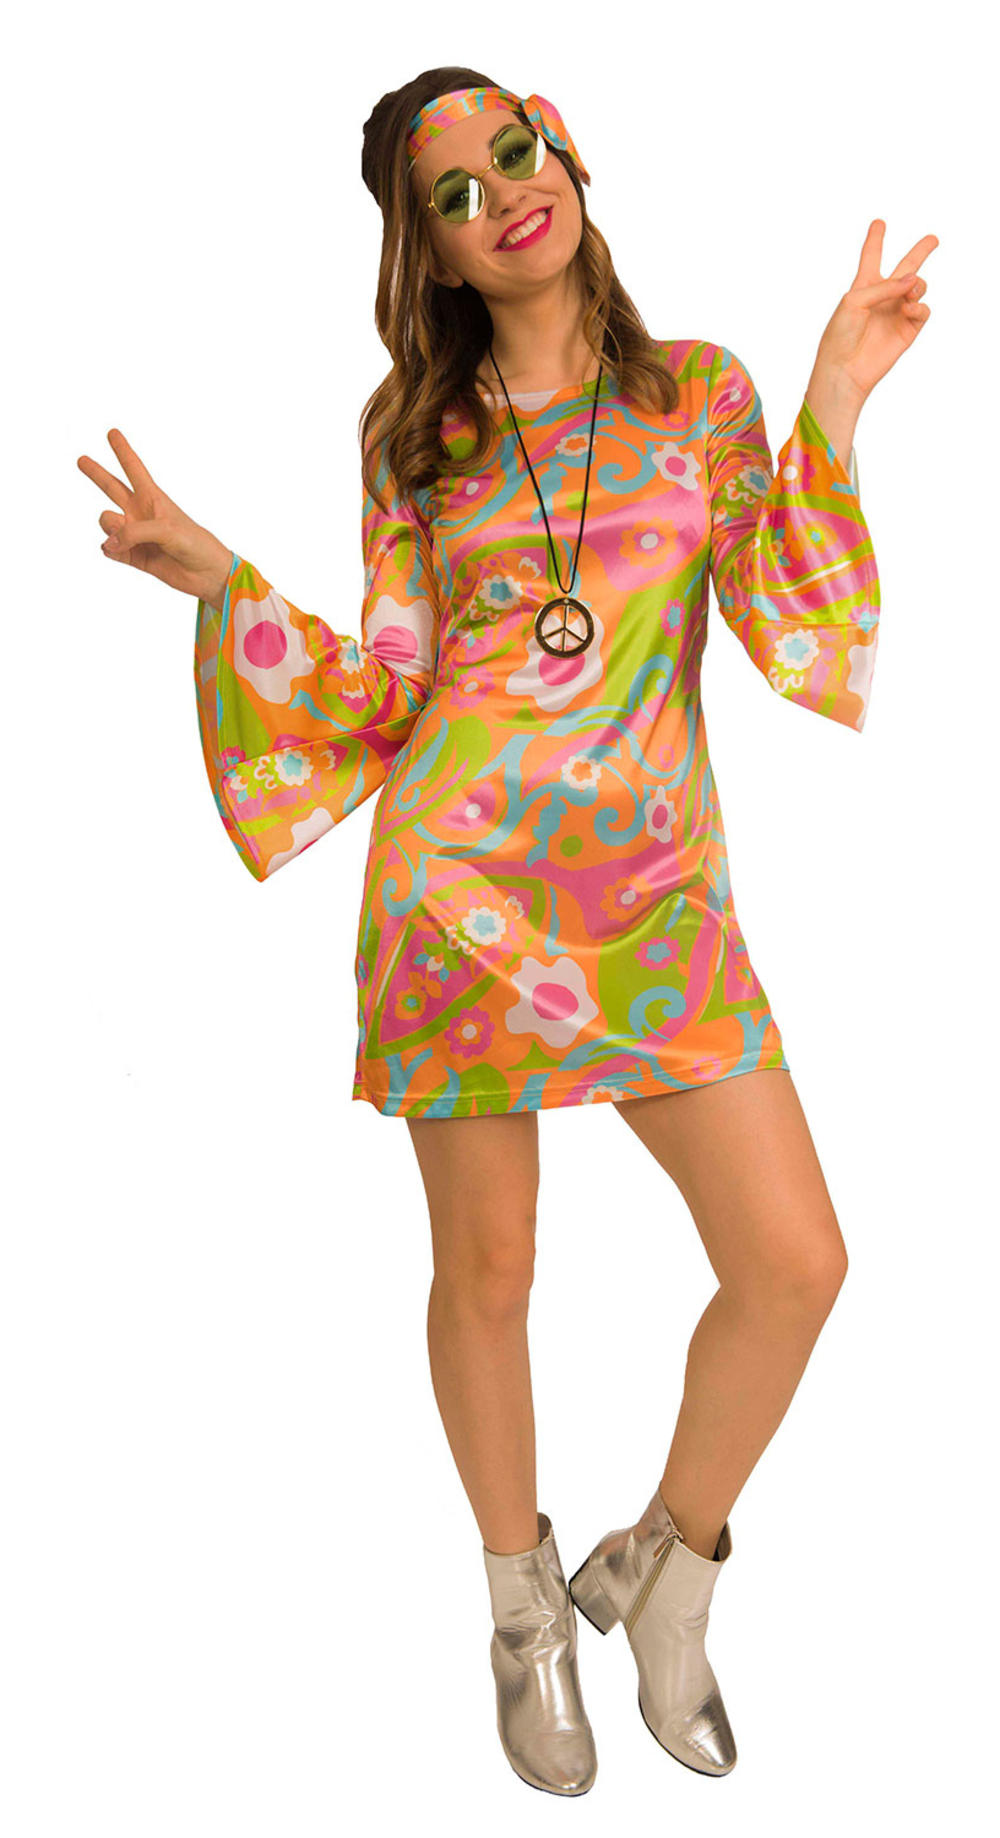 60s Groovy Hippy Babe Ladies Costume 1960s 70s Retro Hippy Adults Costume Outfit